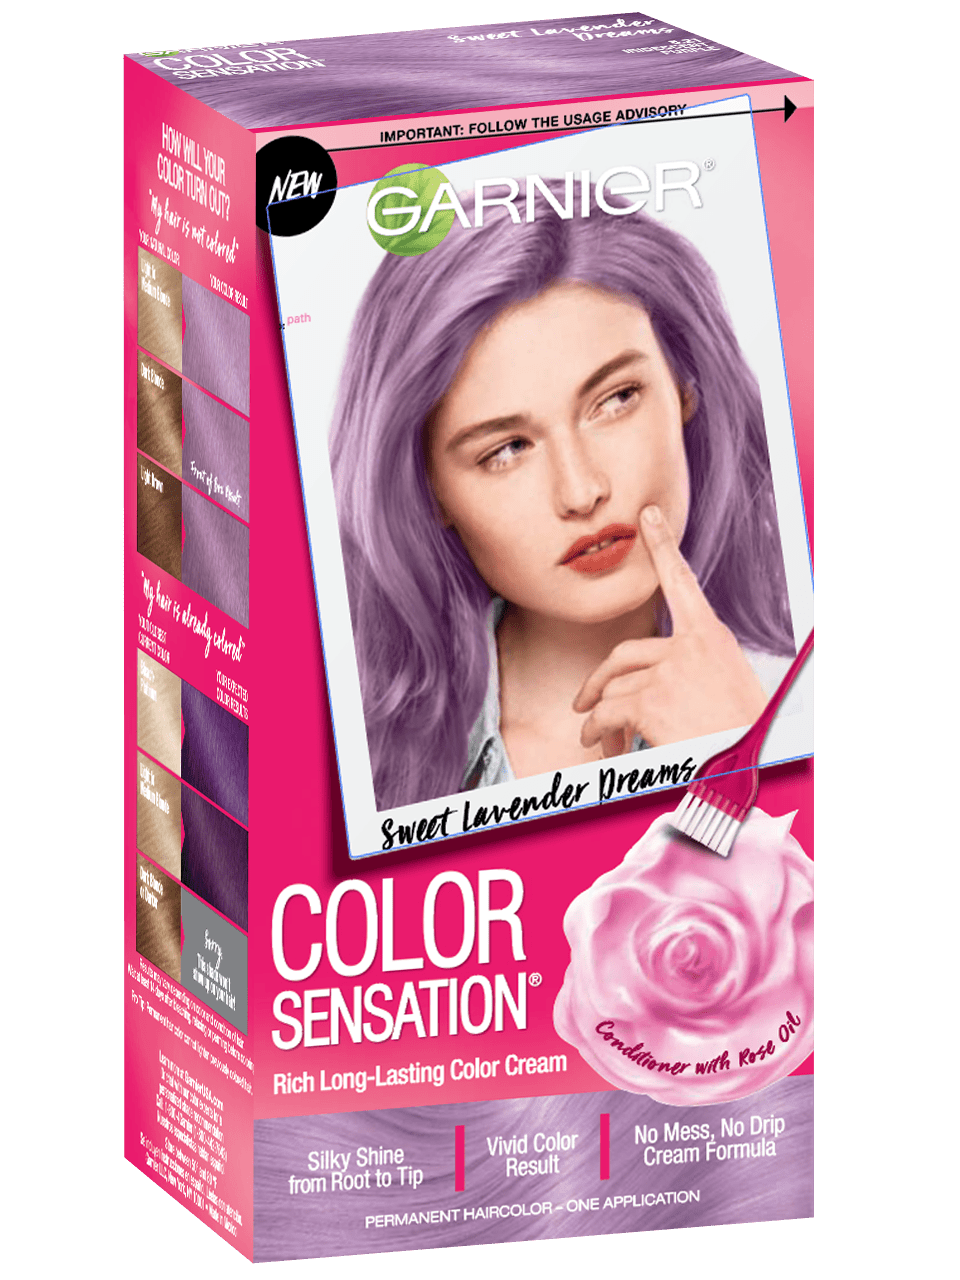 color sensation box angled view